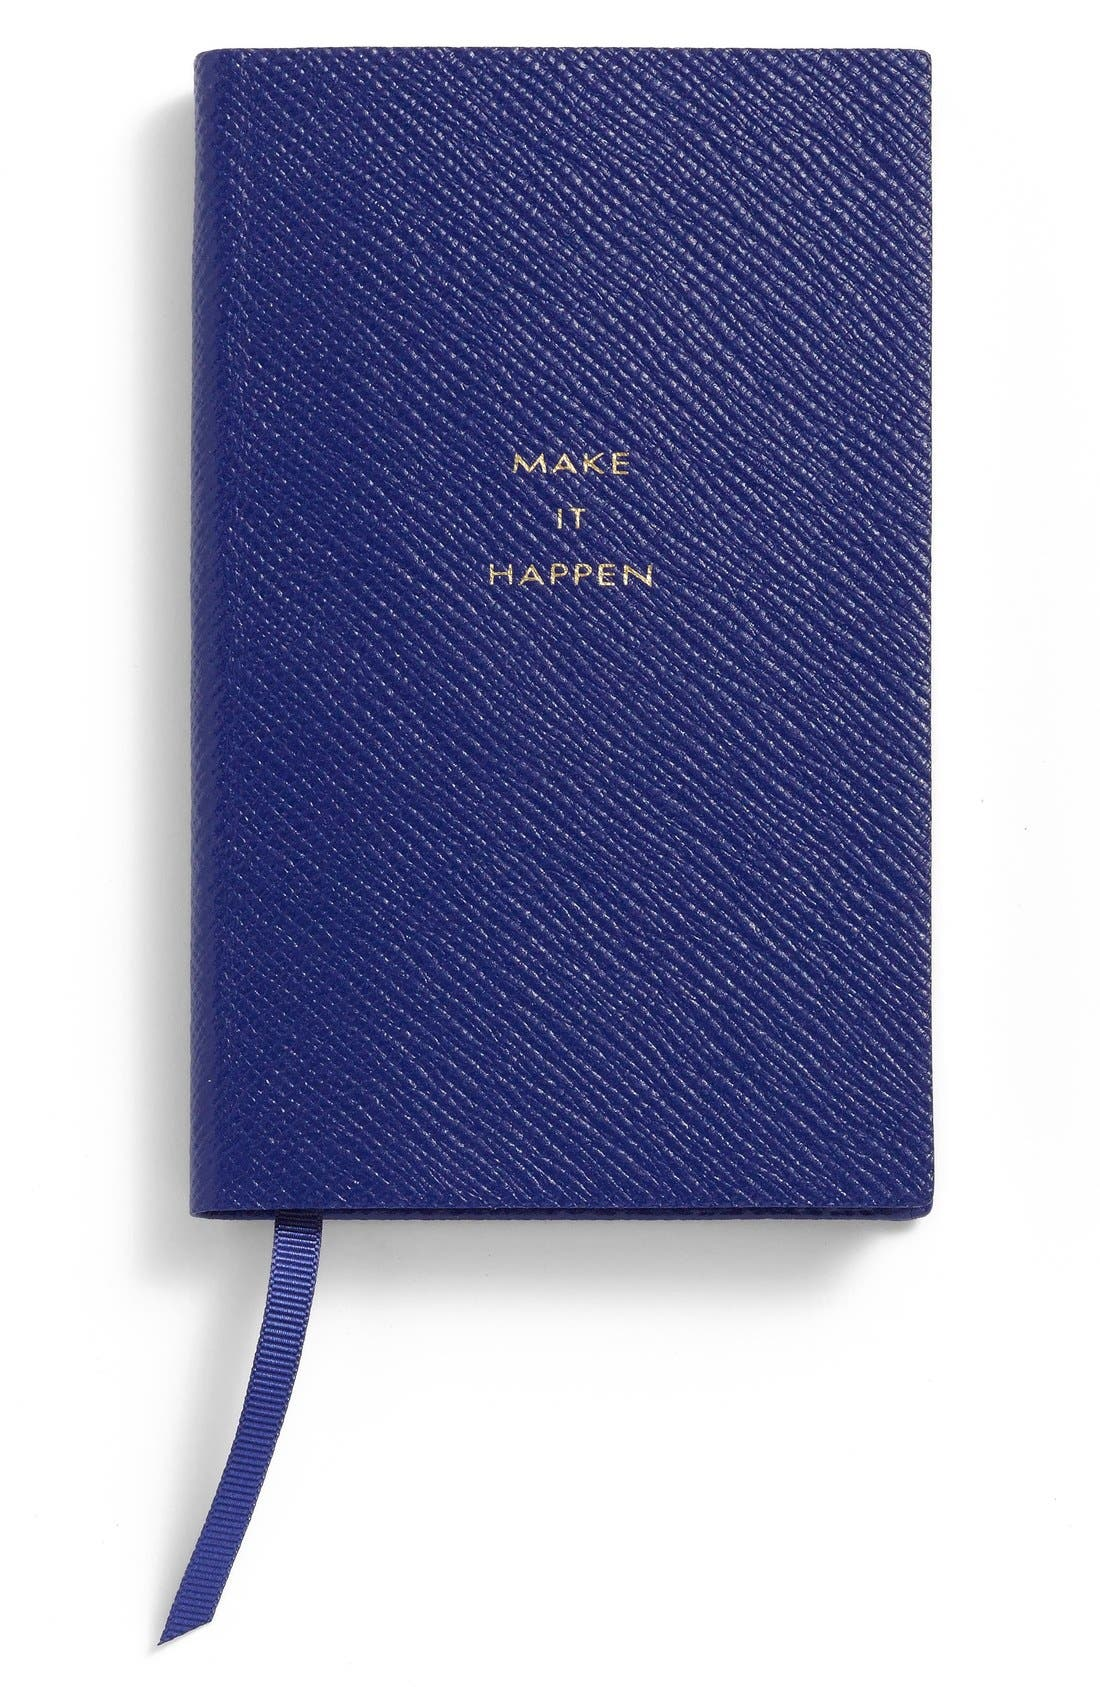 Smythson 'Make It Happen - Panama' Pocket Notebook